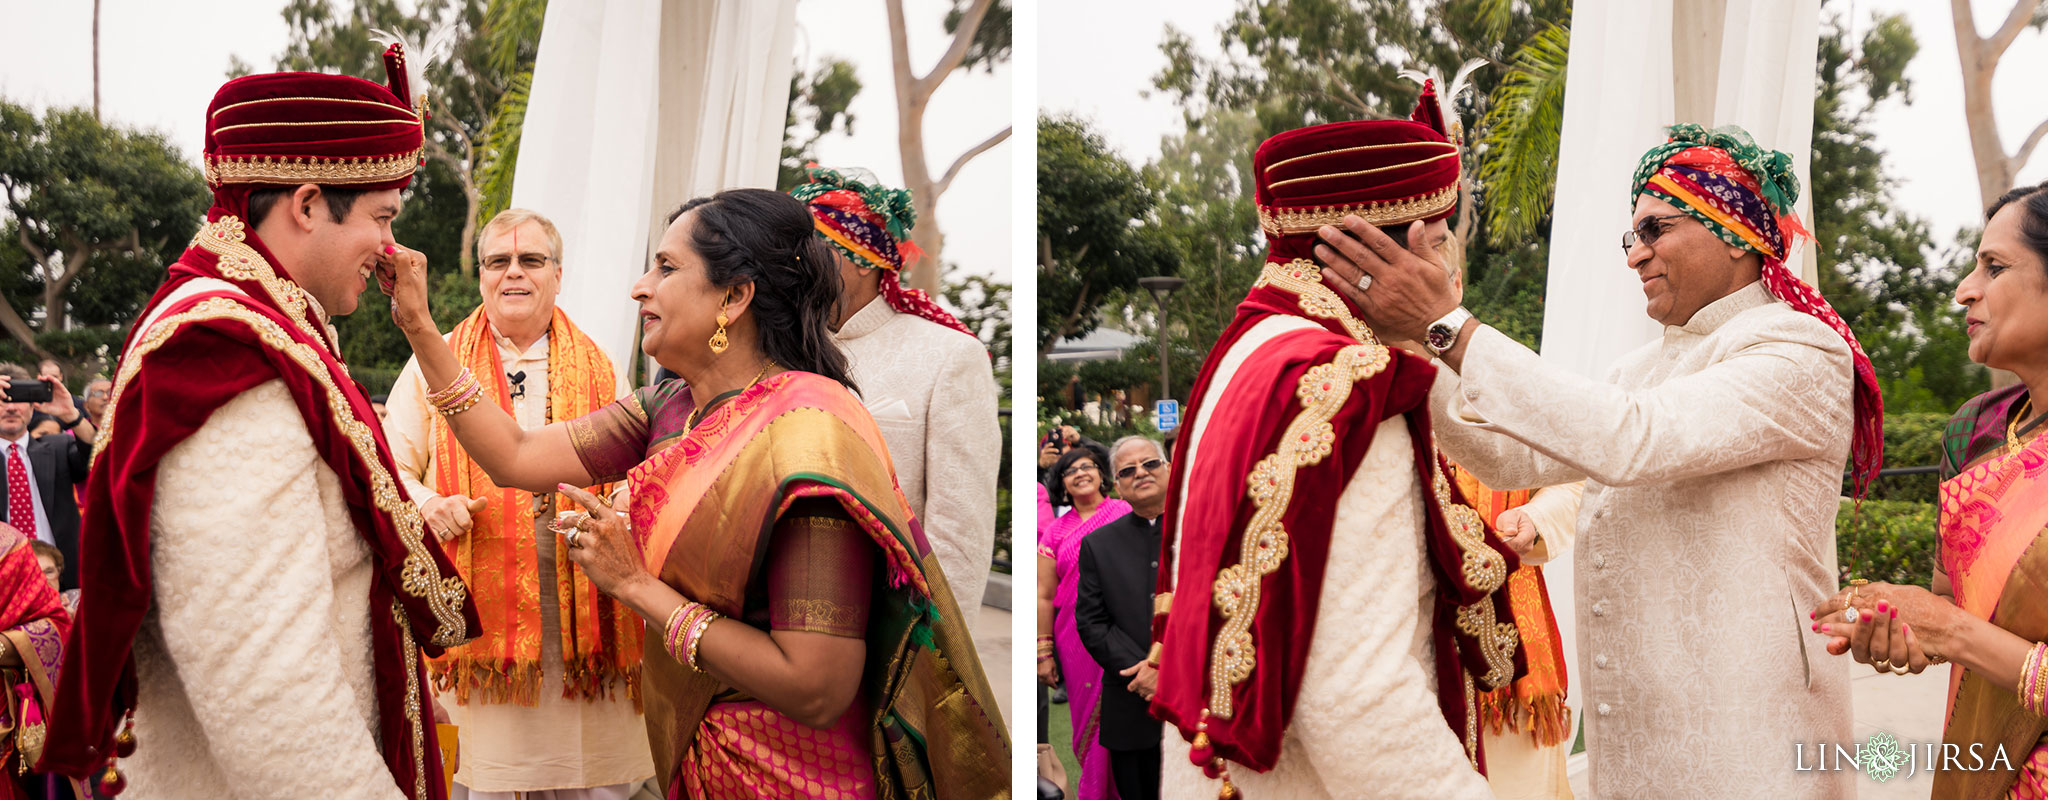 33 newport beach marriott hotel indian wedding baraat photography